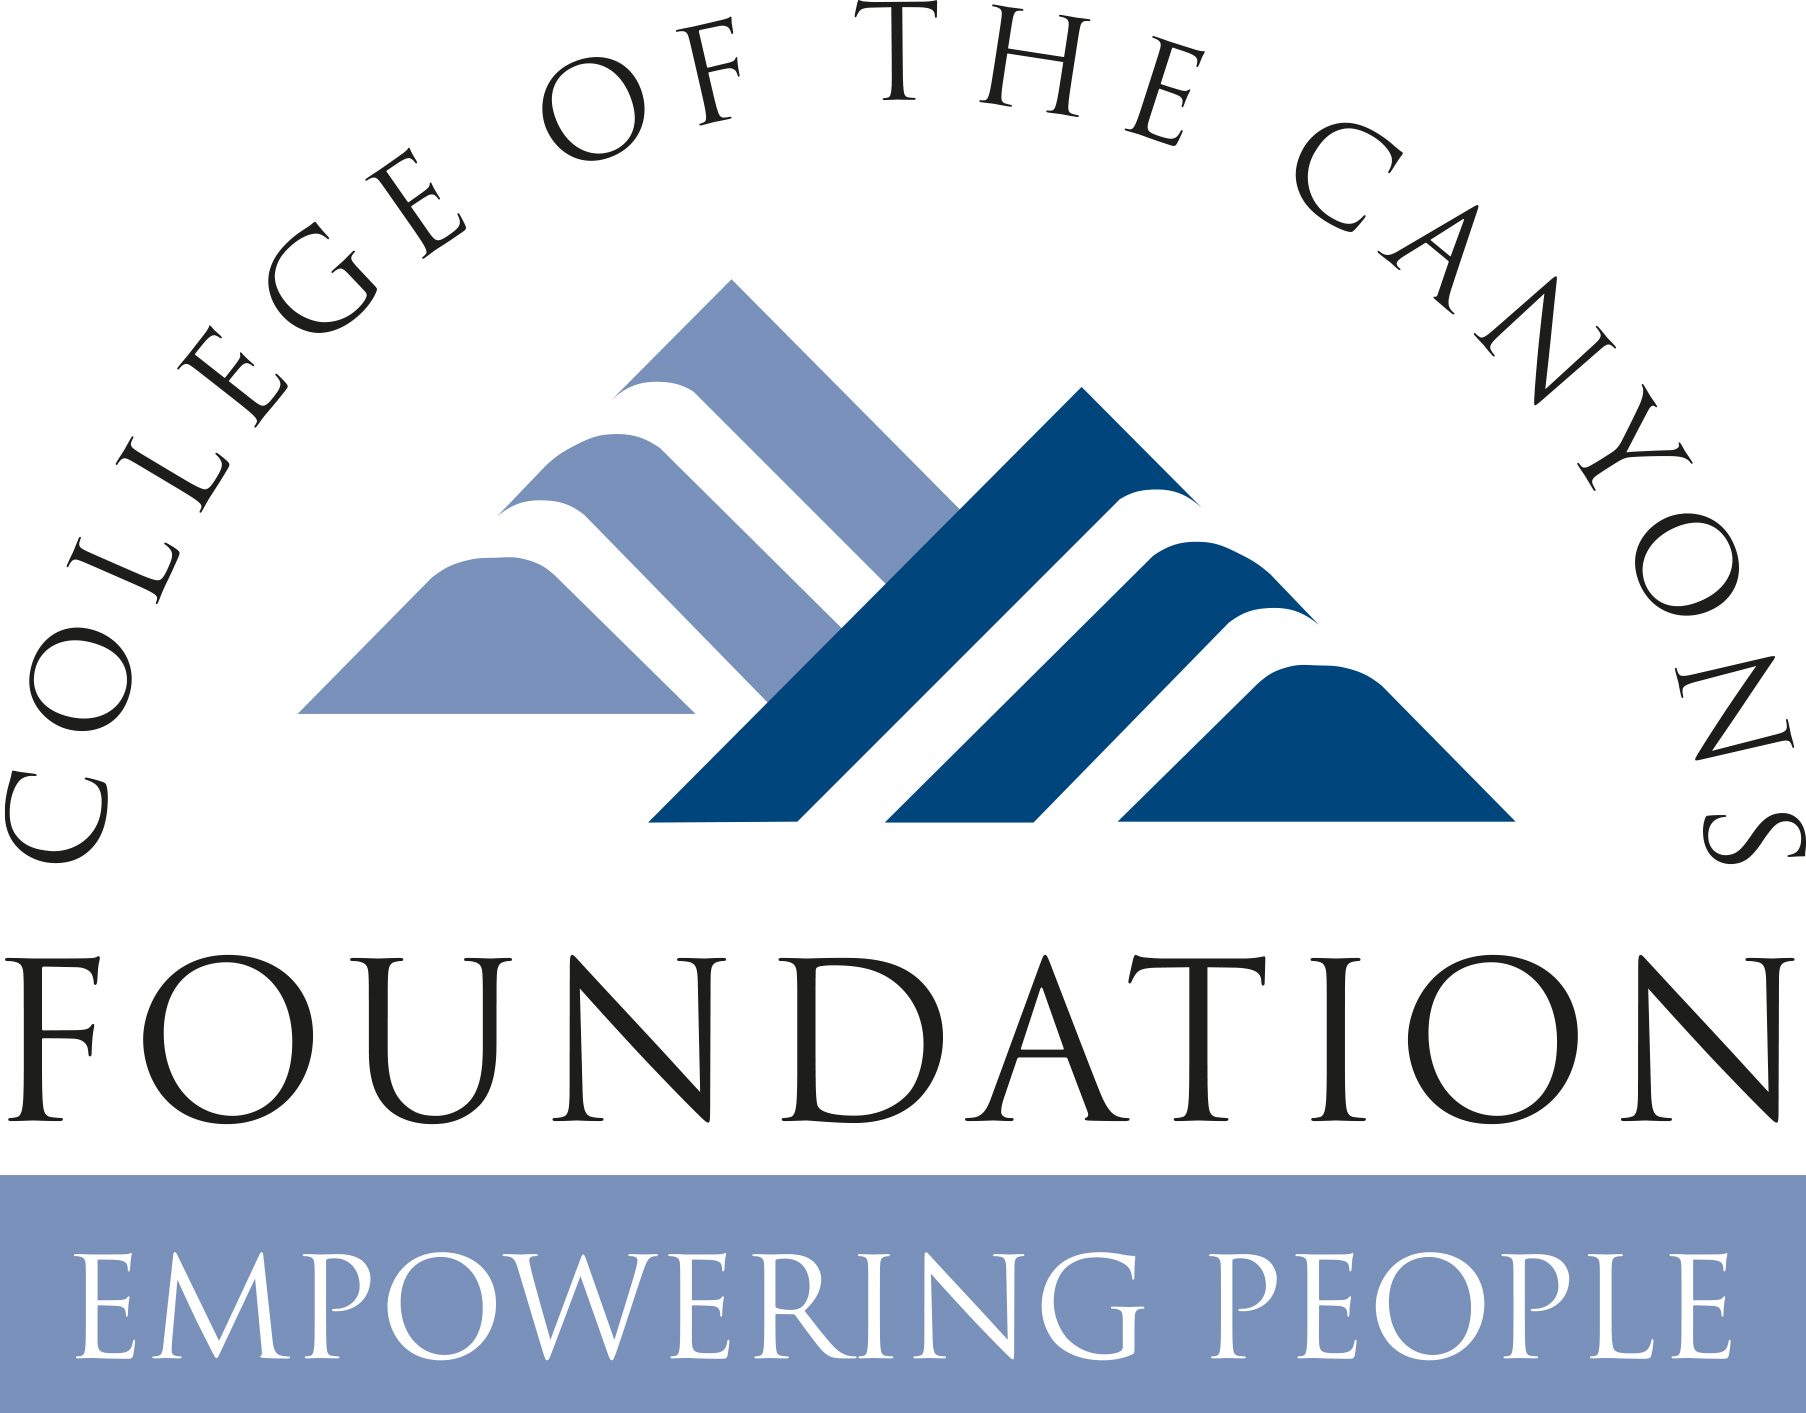 College of the Canyons Foundation logo